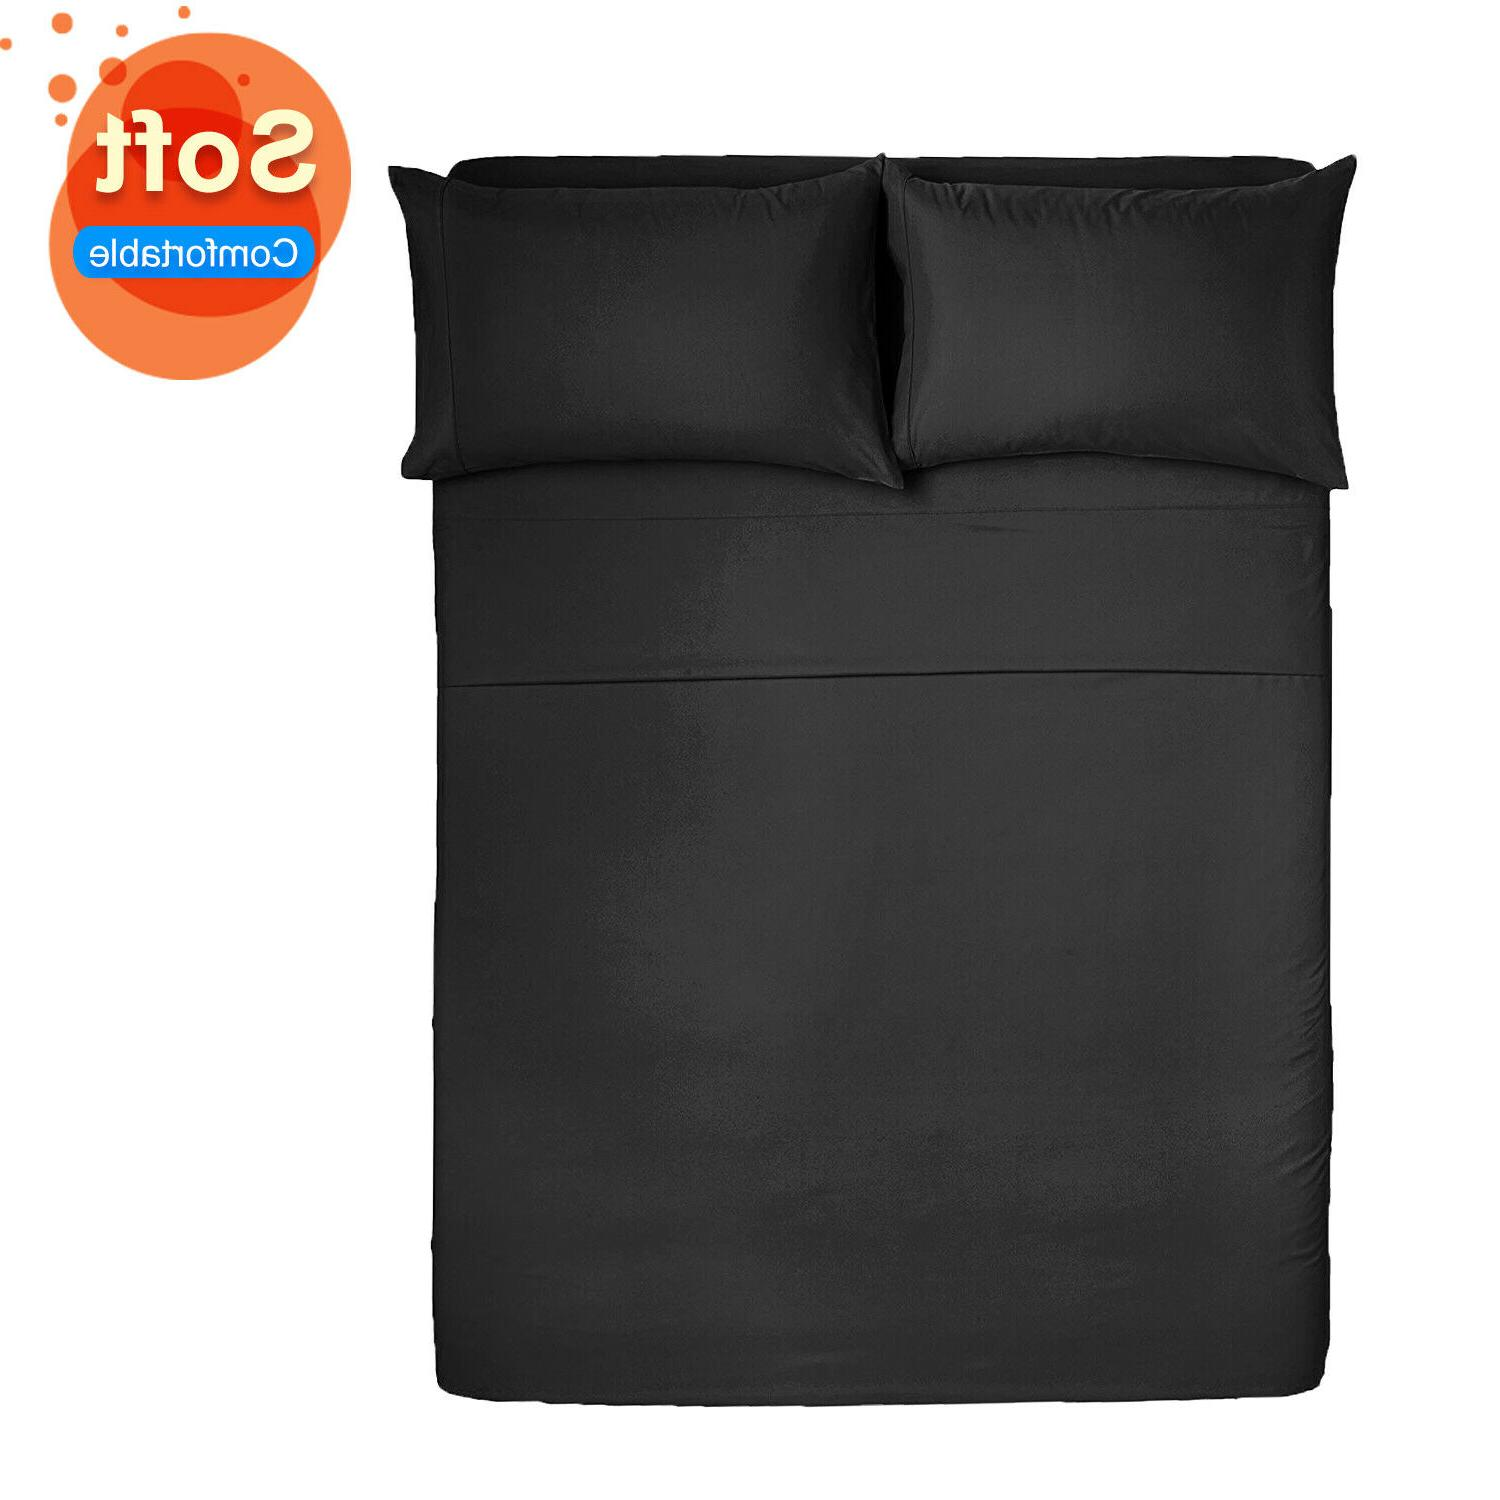 king size bed sheet set brushed microfiber